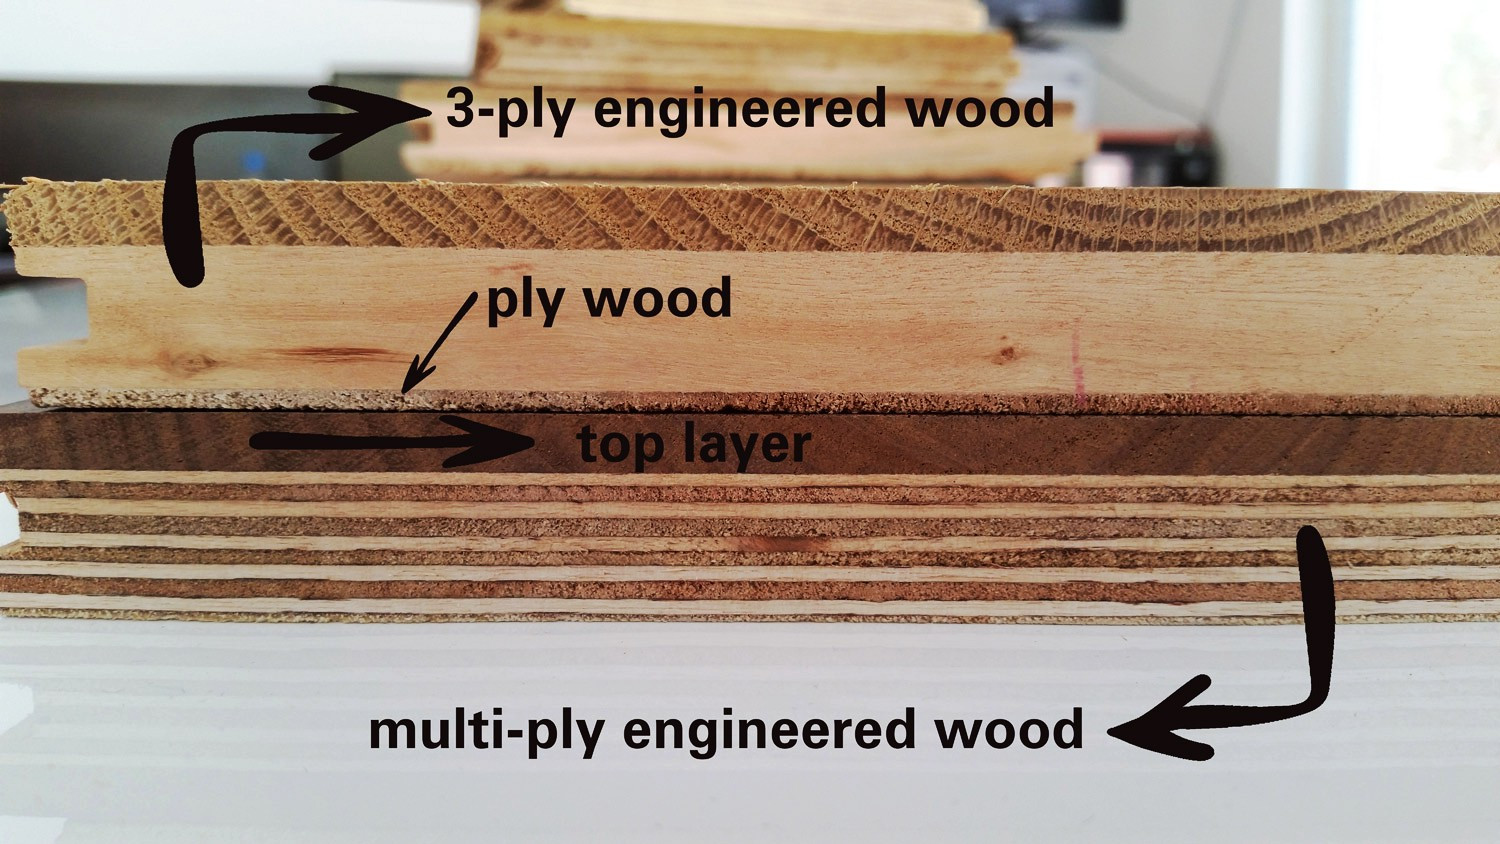 solid hardwood vs engineered hardwood vs laminate flooring of why choose engineered flooring maya abbot medium inside engineered wood and its layers